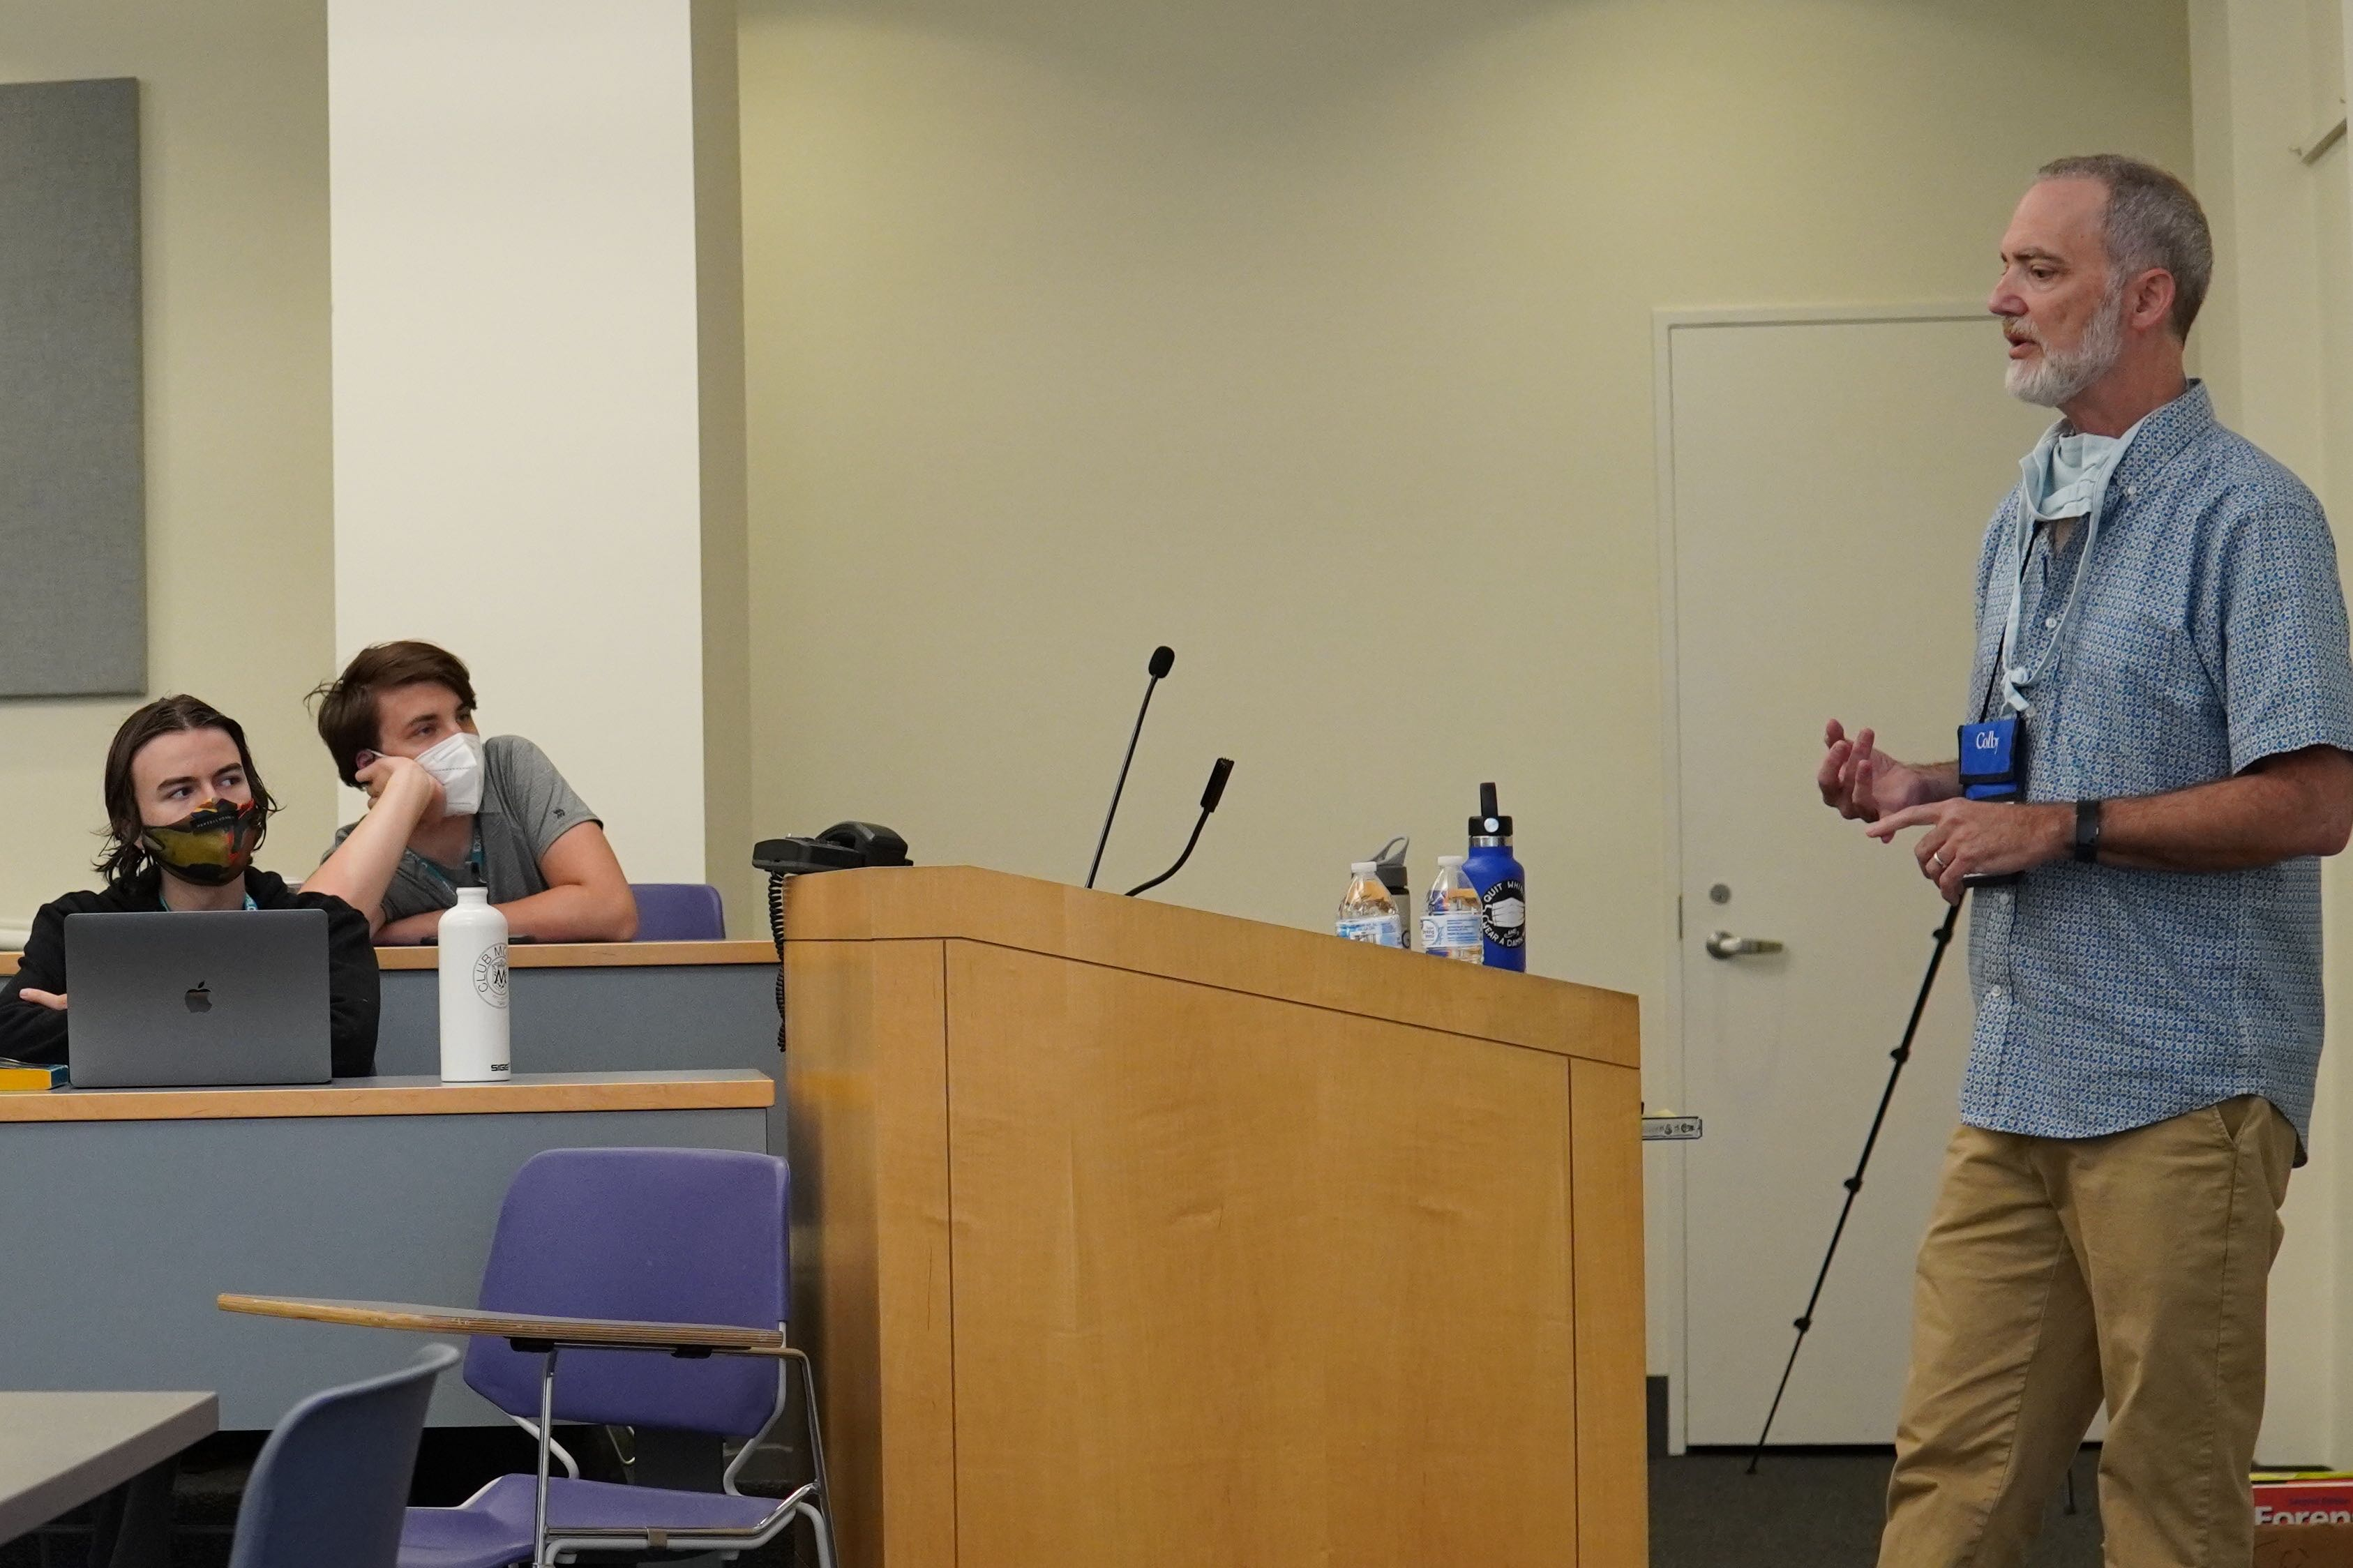 Greg Davis speaks in front of a podium while students listen in the audience.